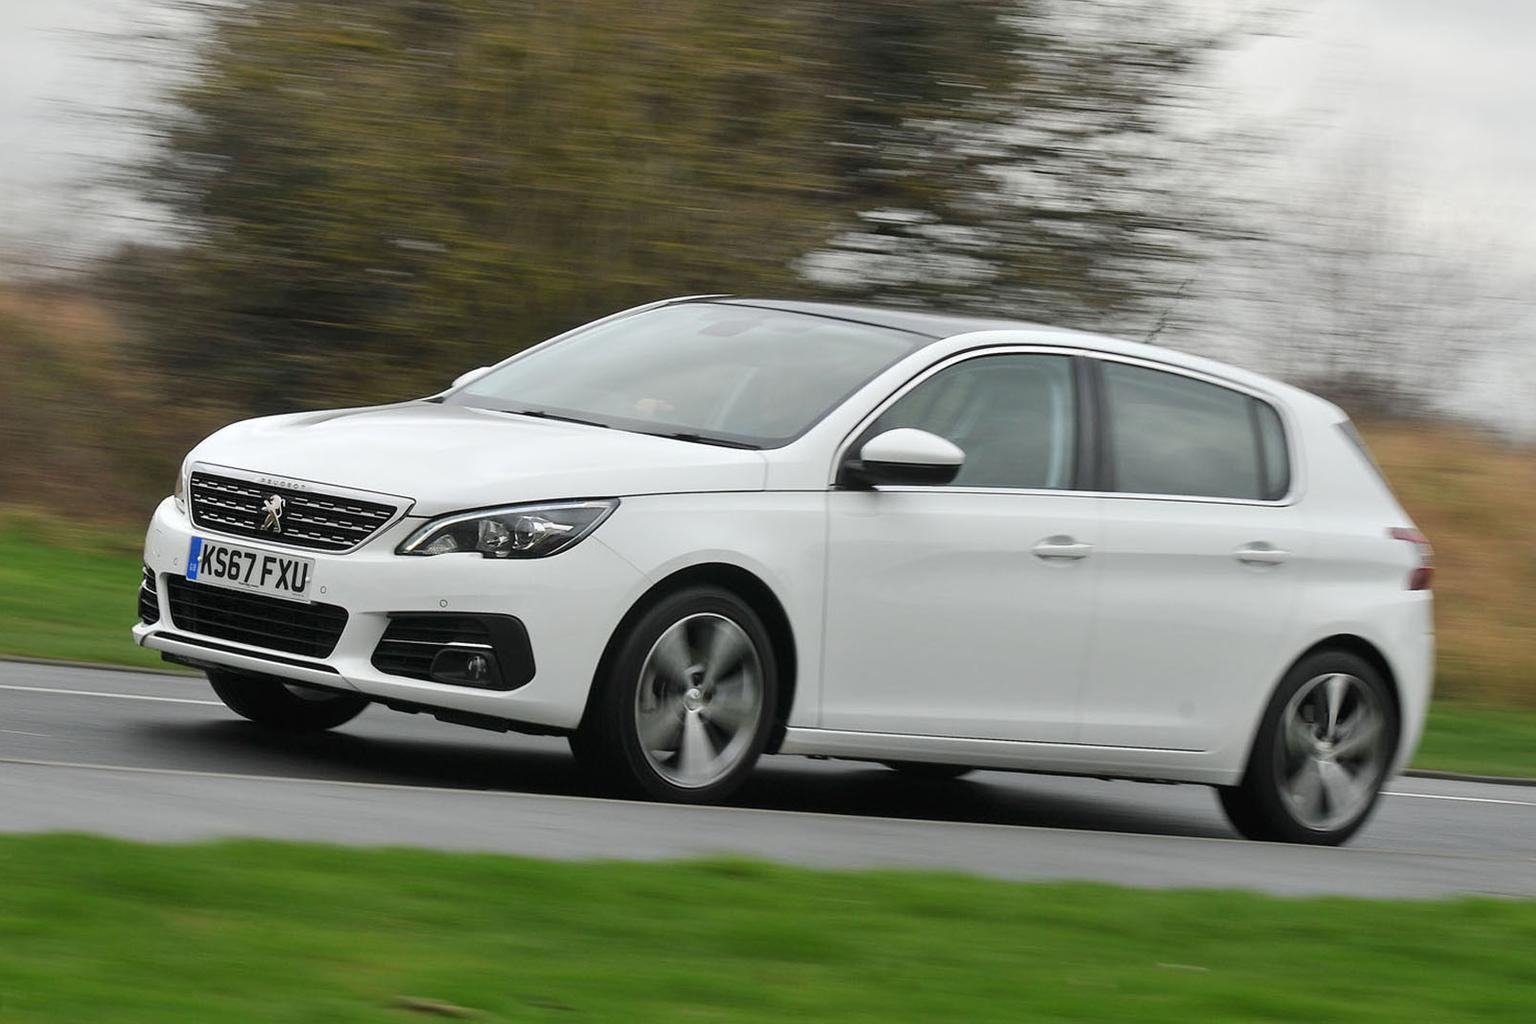 2018 Peugeot 308 1.5 BlueHDi 130 review - verdict